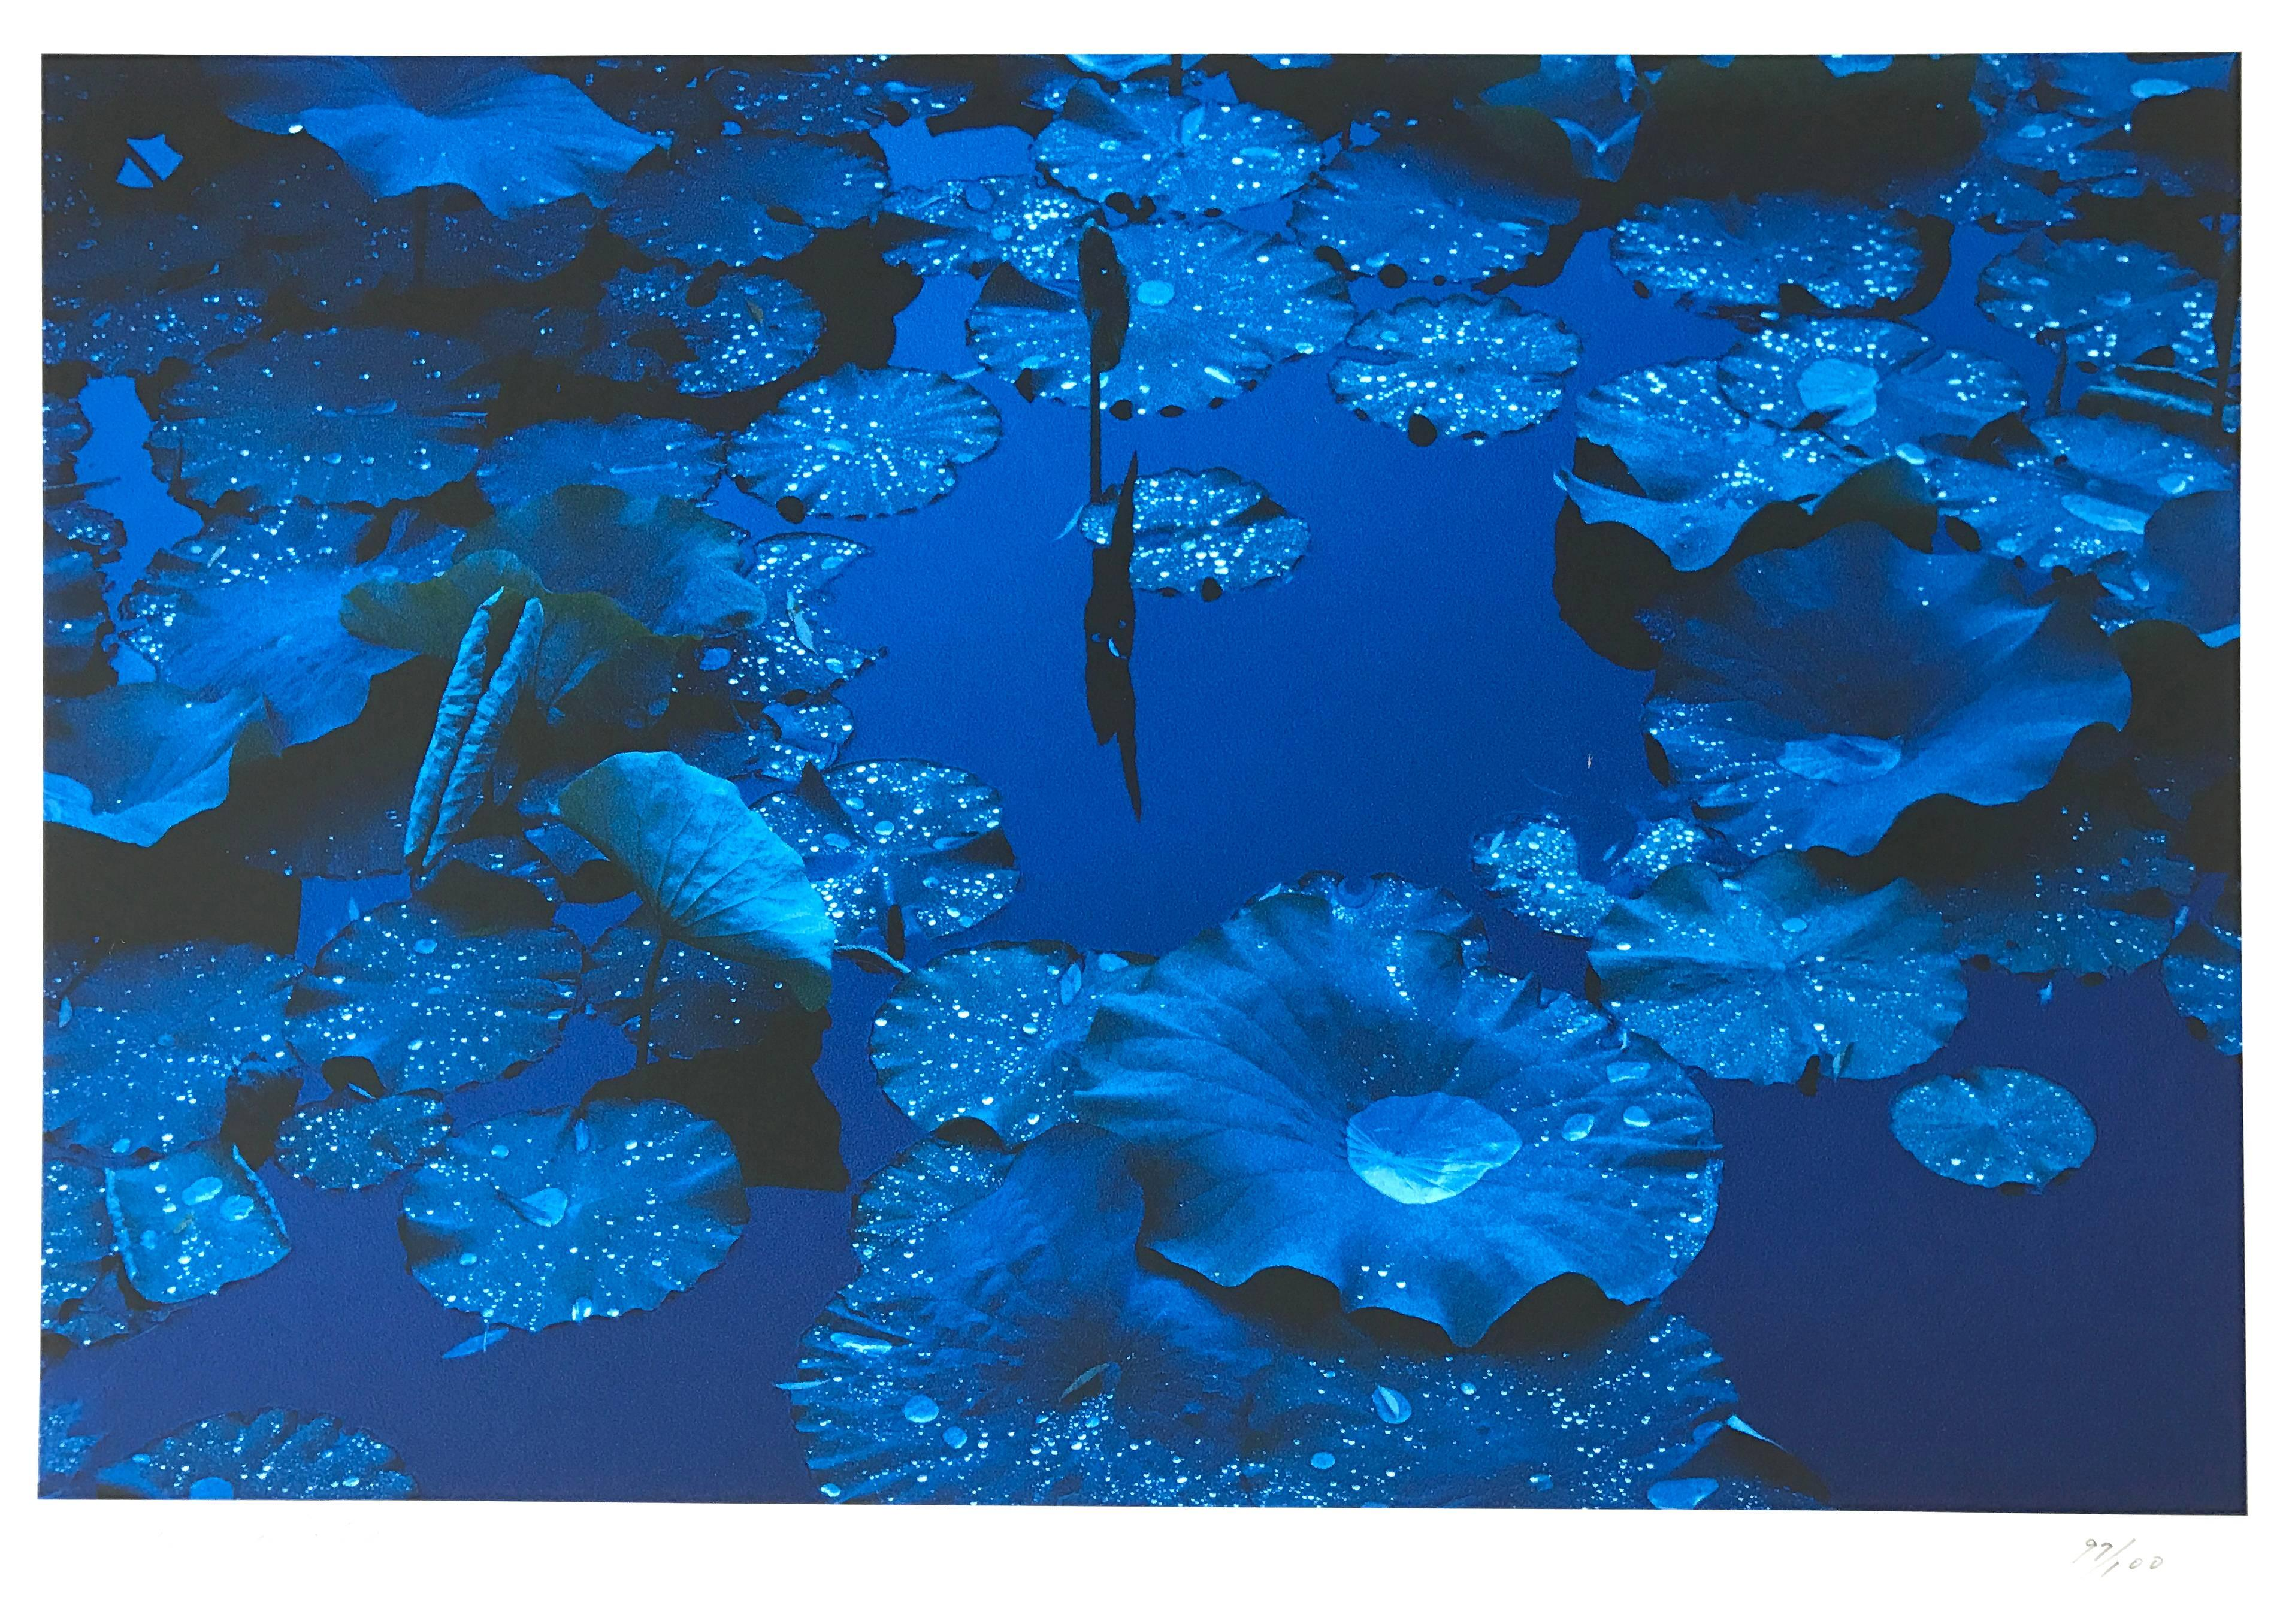 Blue Lotus, Japan, Contemporary Color Japanese Photography, Signed by the Artist